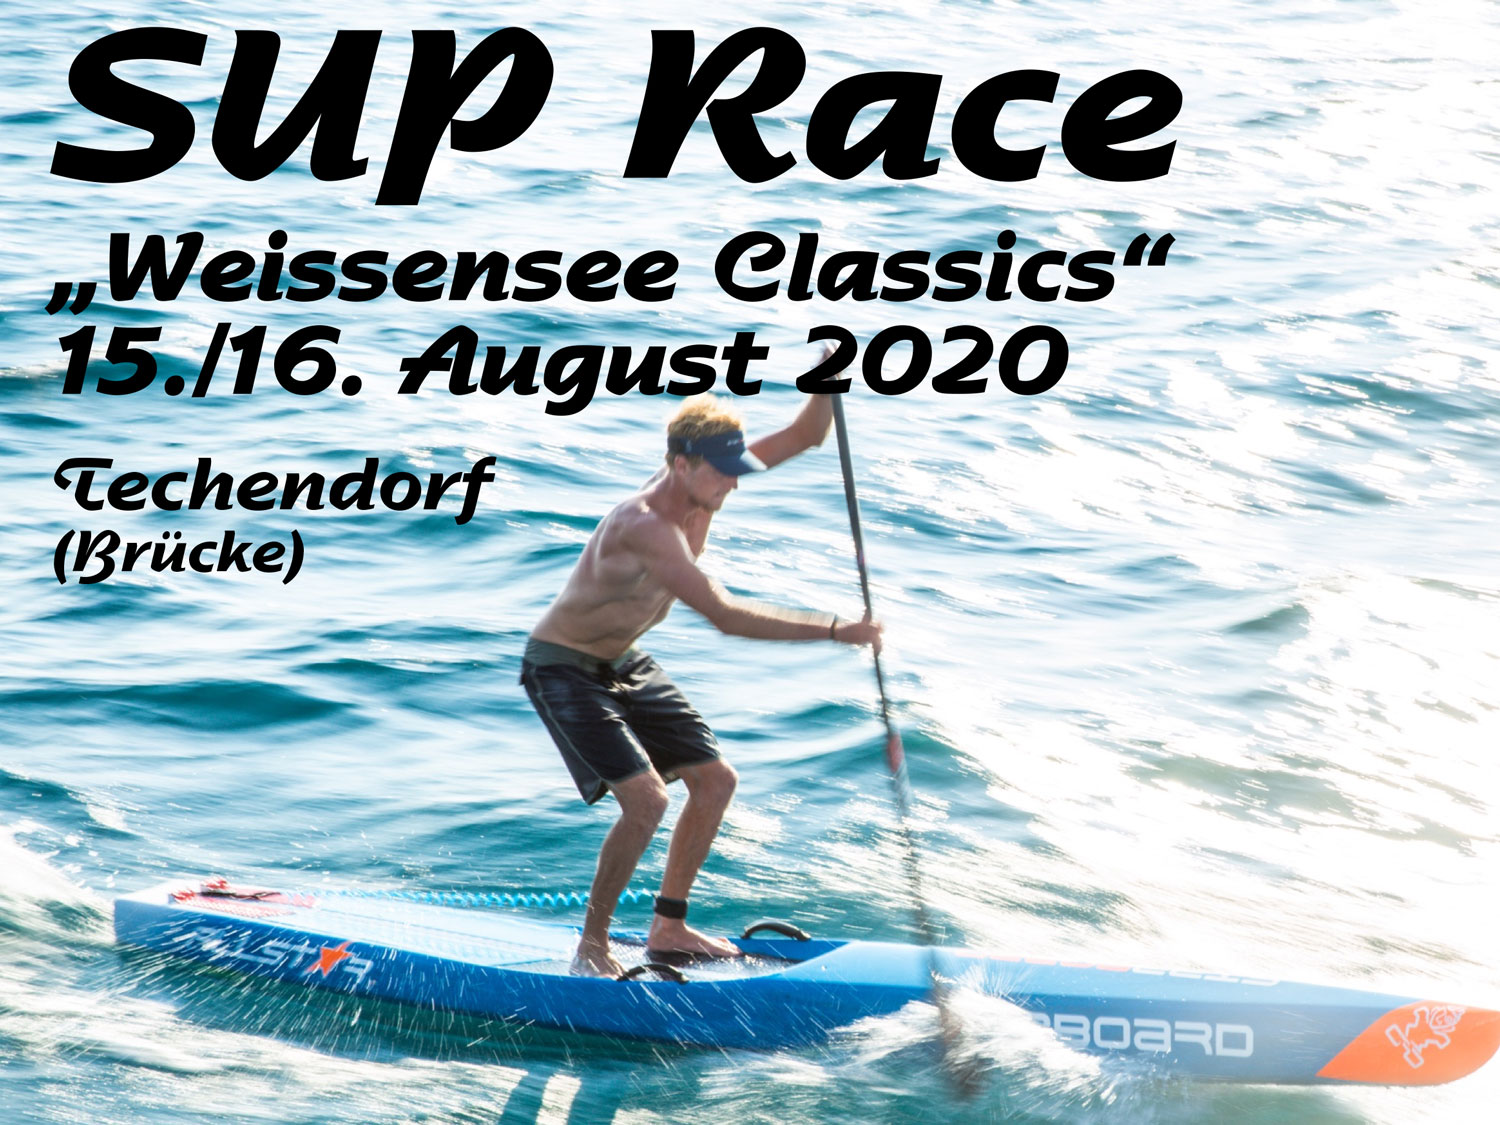 SUP Race Weissensee Classic, www.weissensee.news